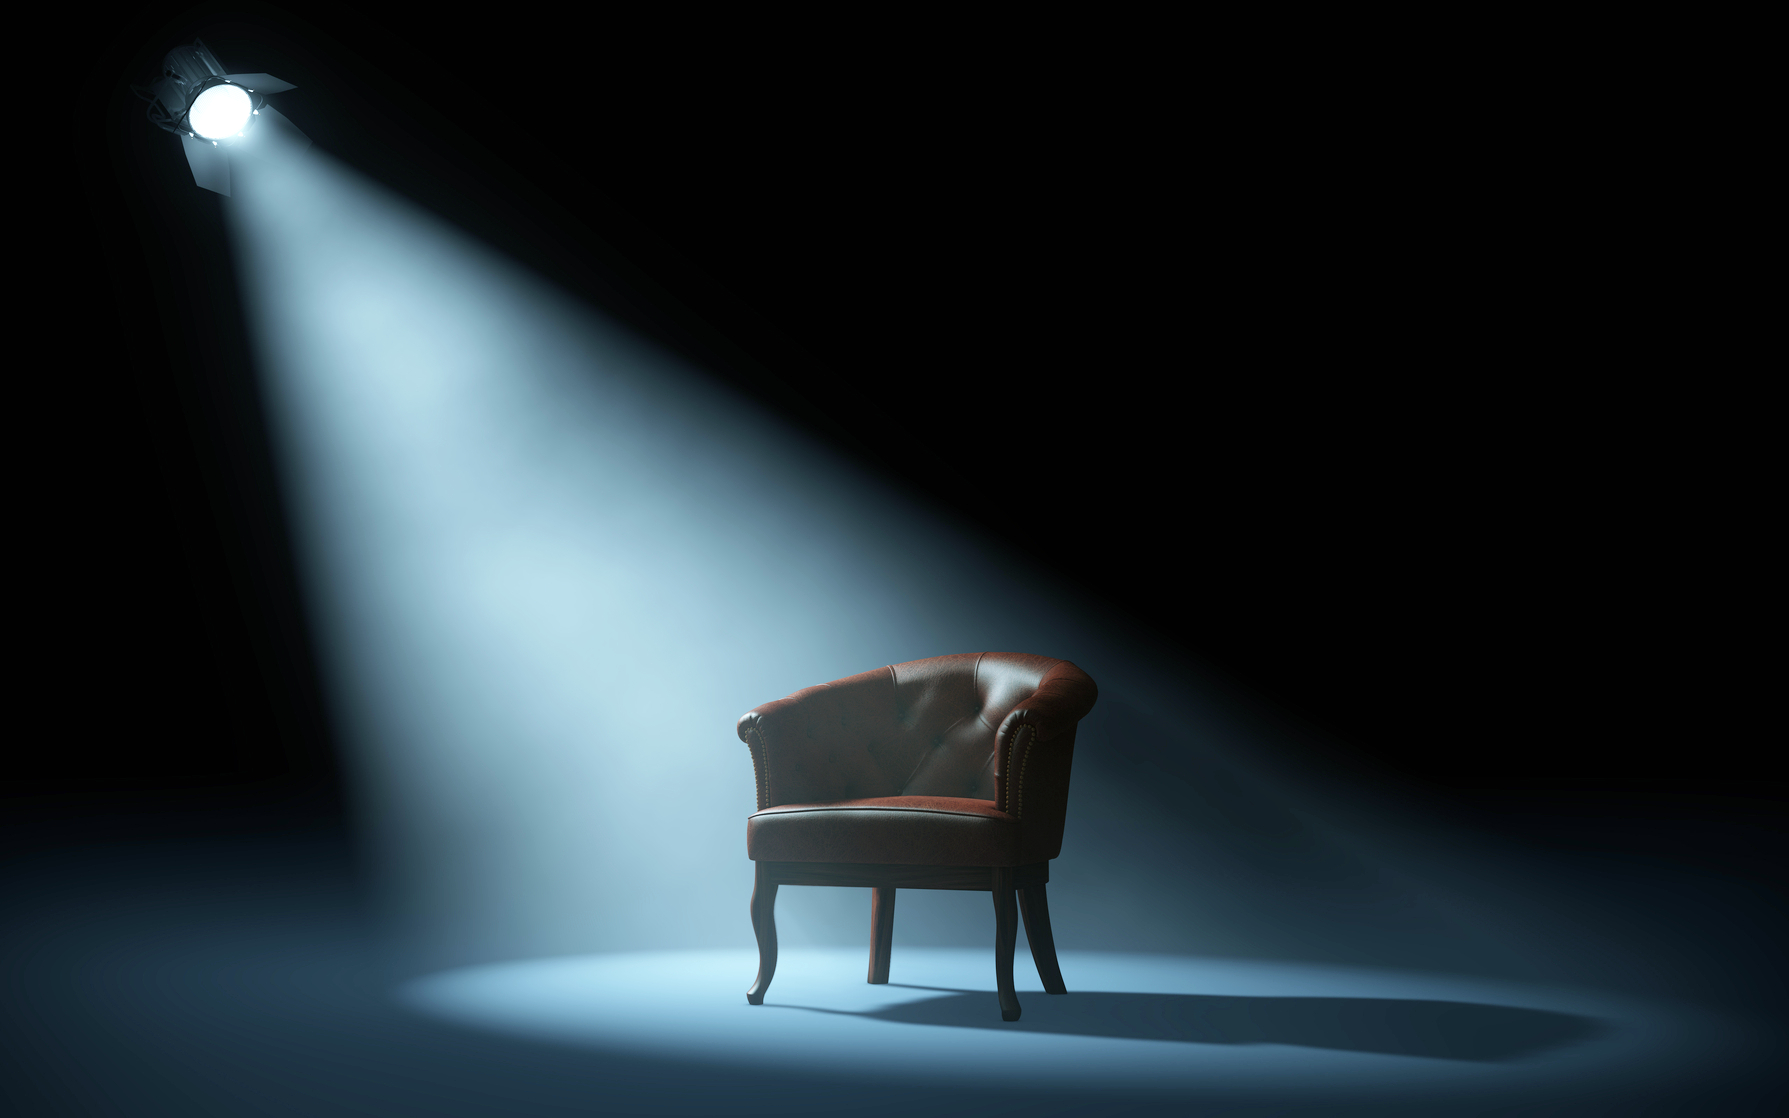 chair on stage under spotlight